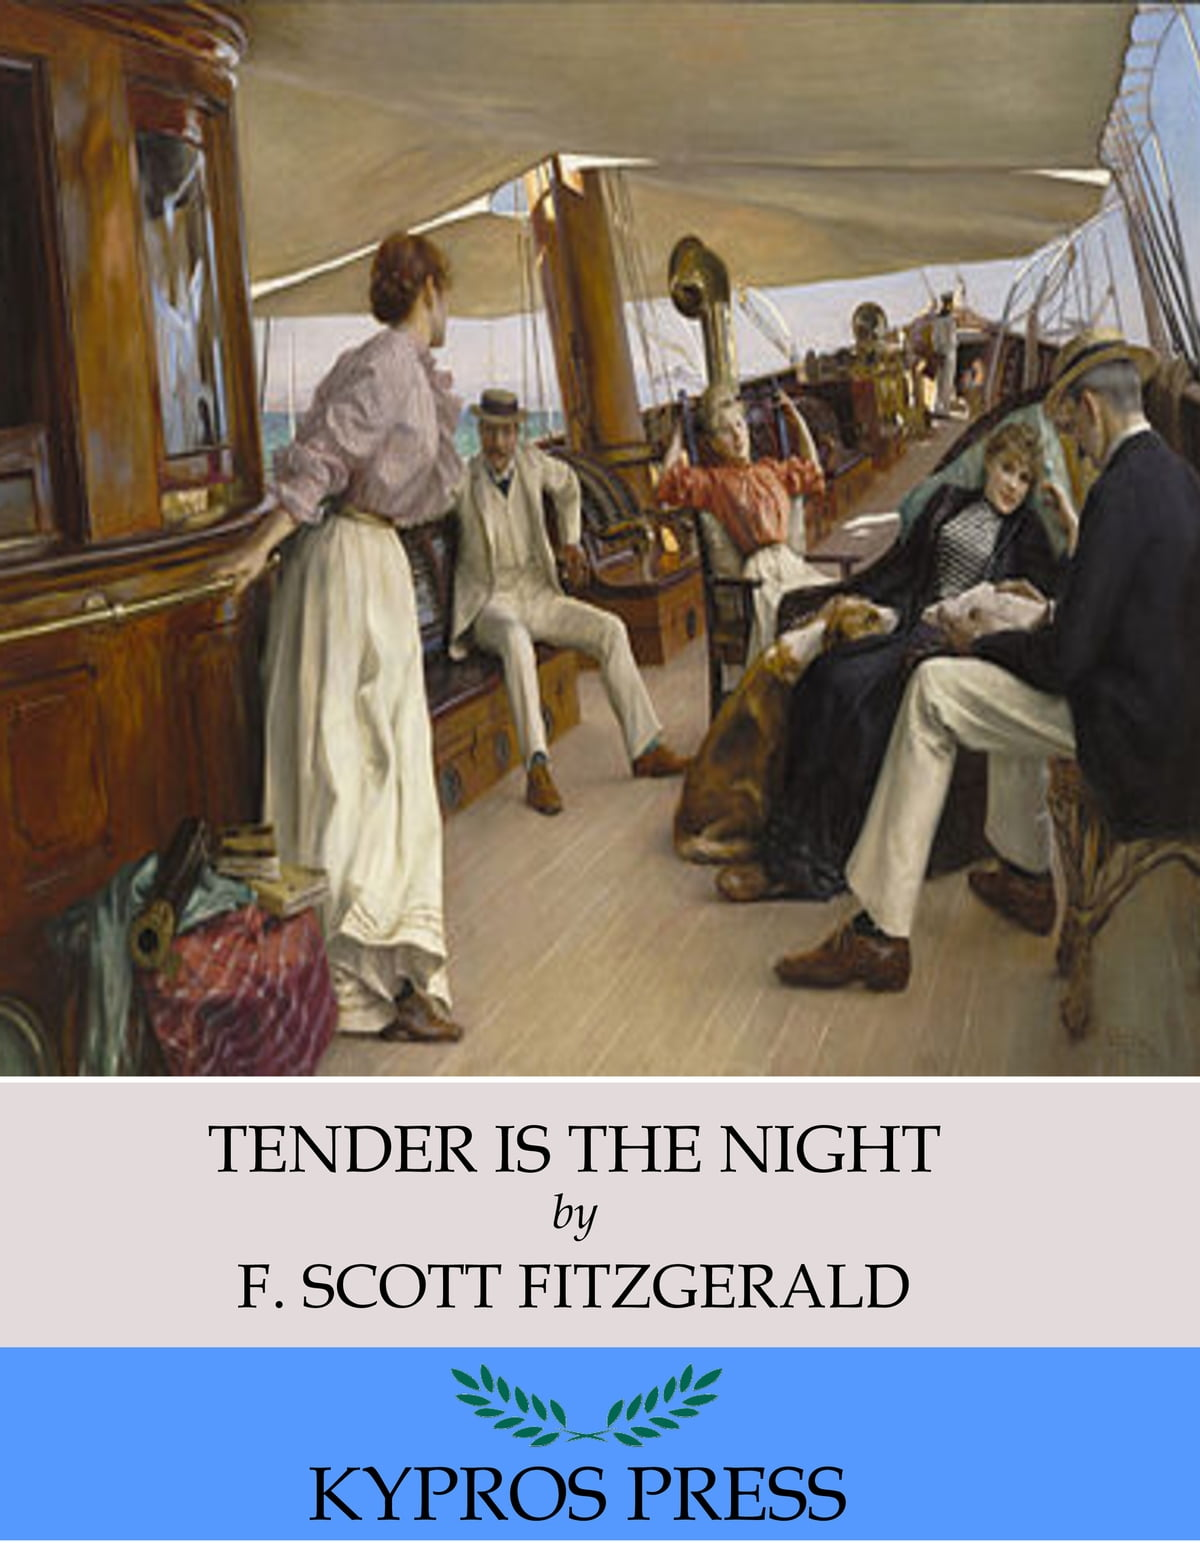 a review of tender is the night by f scott fitzgerald F scott fitzgerald wrote in a friend's copy of tender is the night, if you liked the great gatsby, for god's sake read this gatsby was a tour de force but this is a confession of faith set in the south of france in the decade after world war i, tender is the night is the story of a.